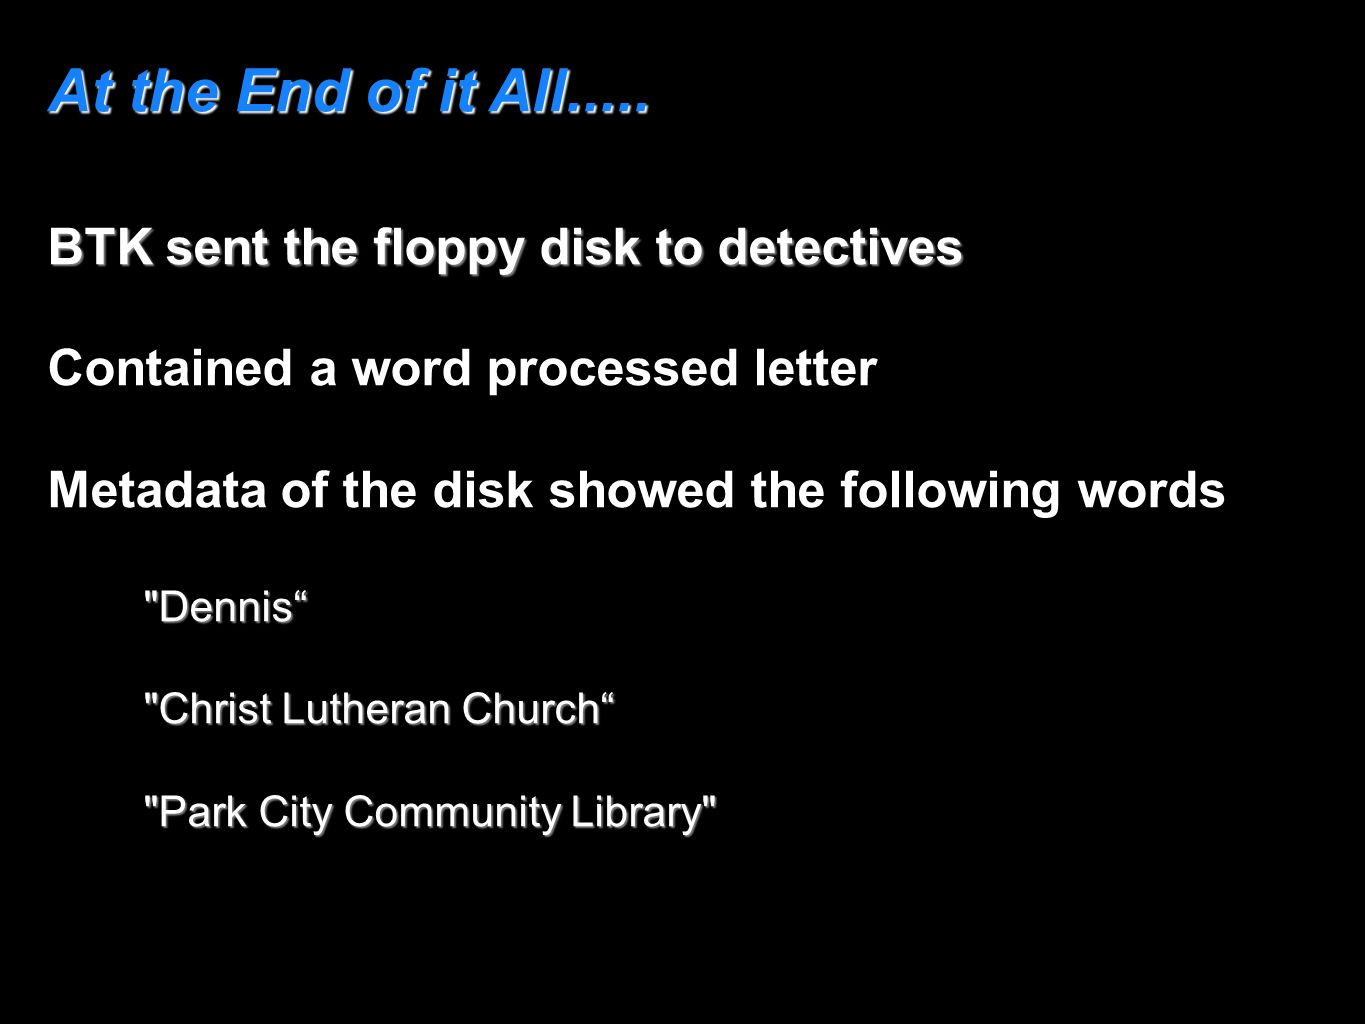 At the End of it All..... BTK sent the floppy disk to detectives Contained a word processed letter Metadata of the disk showed the following words